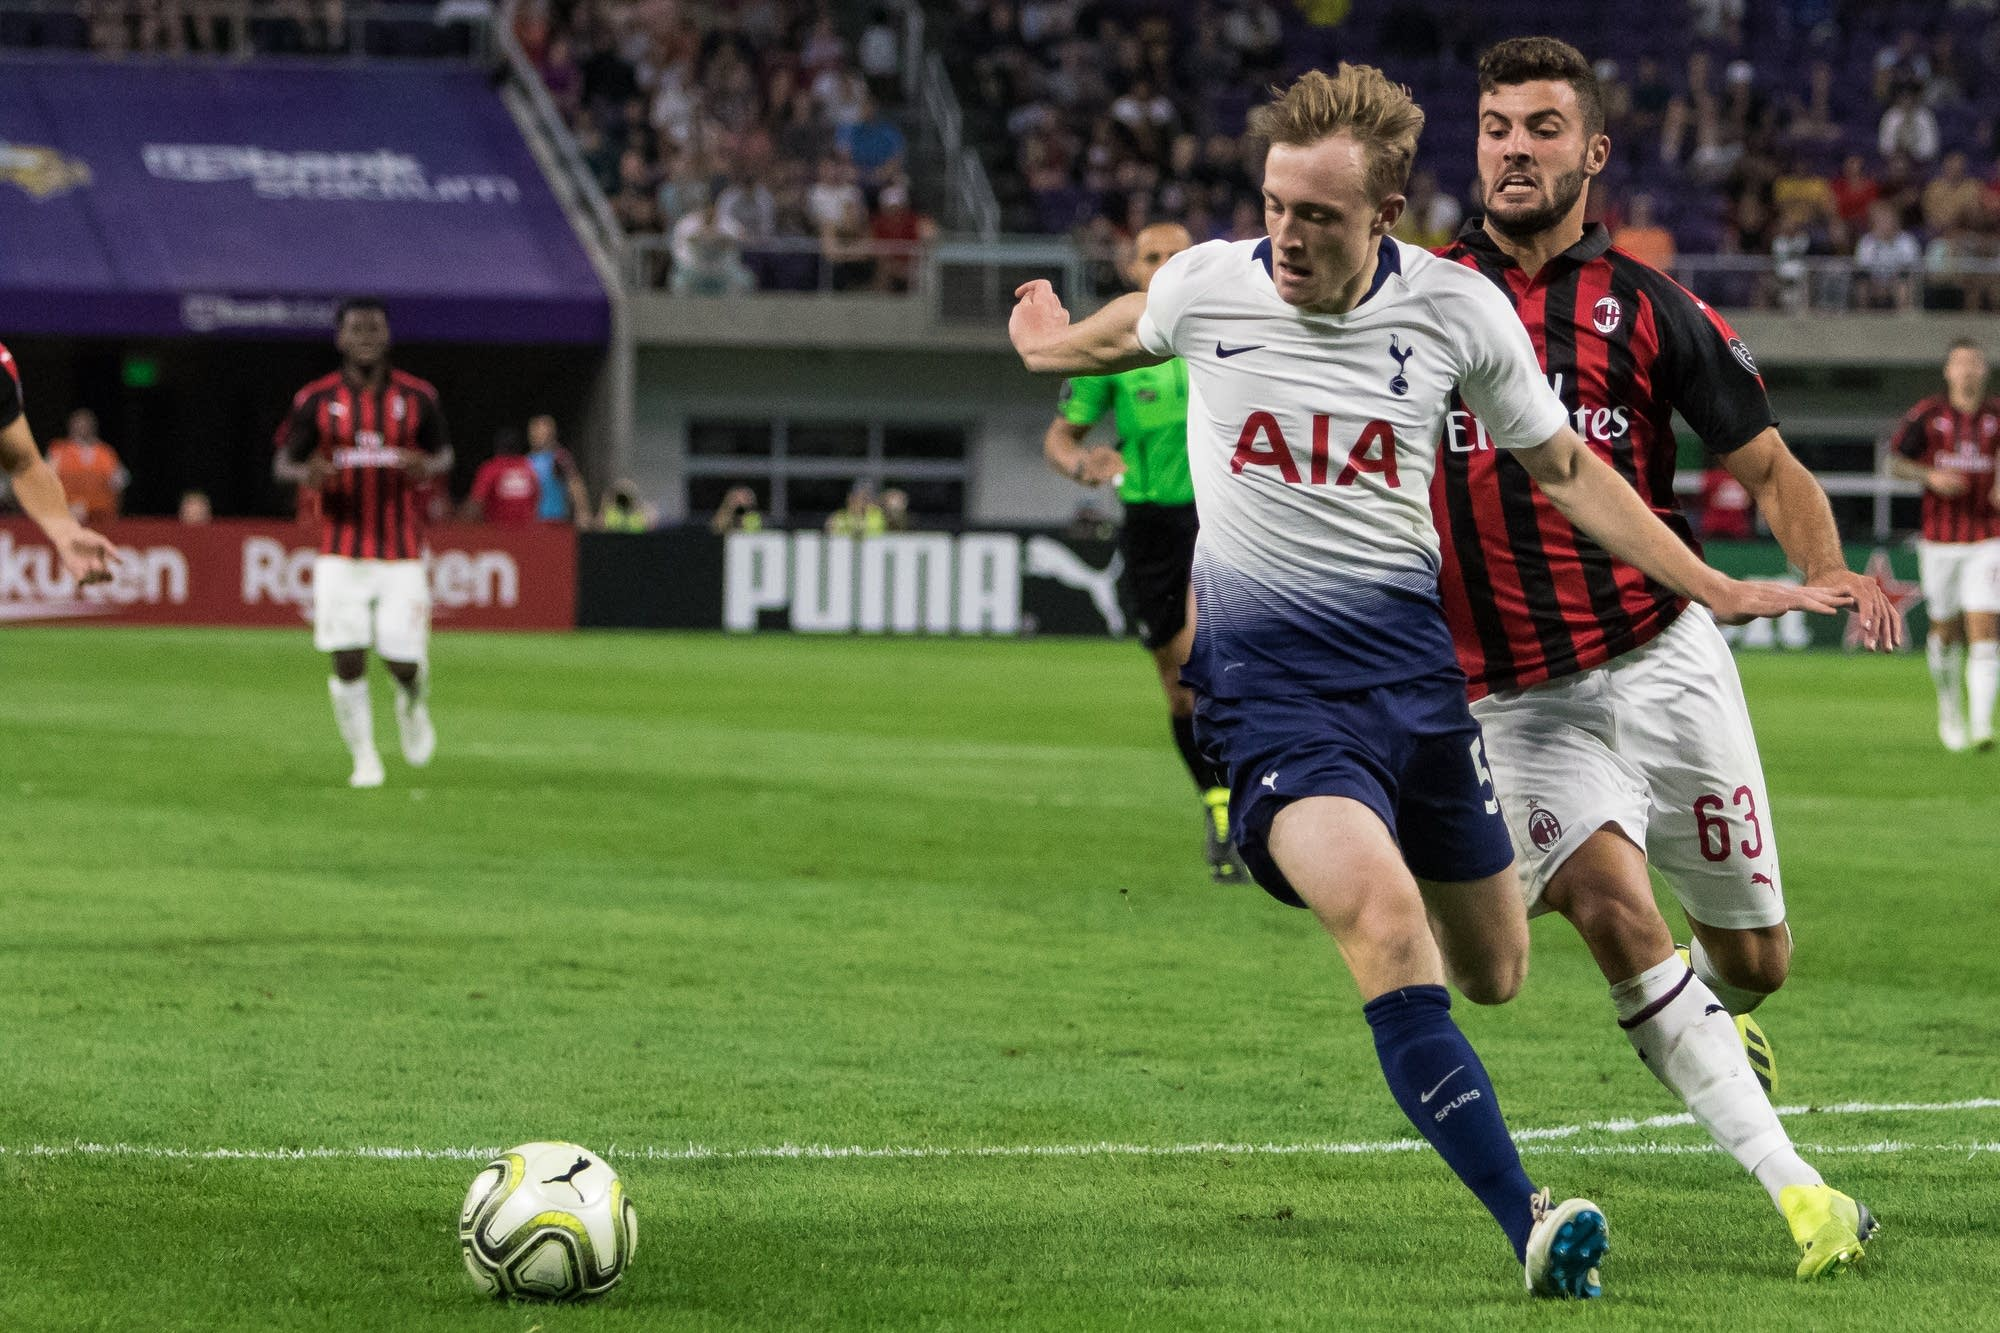 Oliver Skipp rivals Patrick Cutrone for possession of the ball.